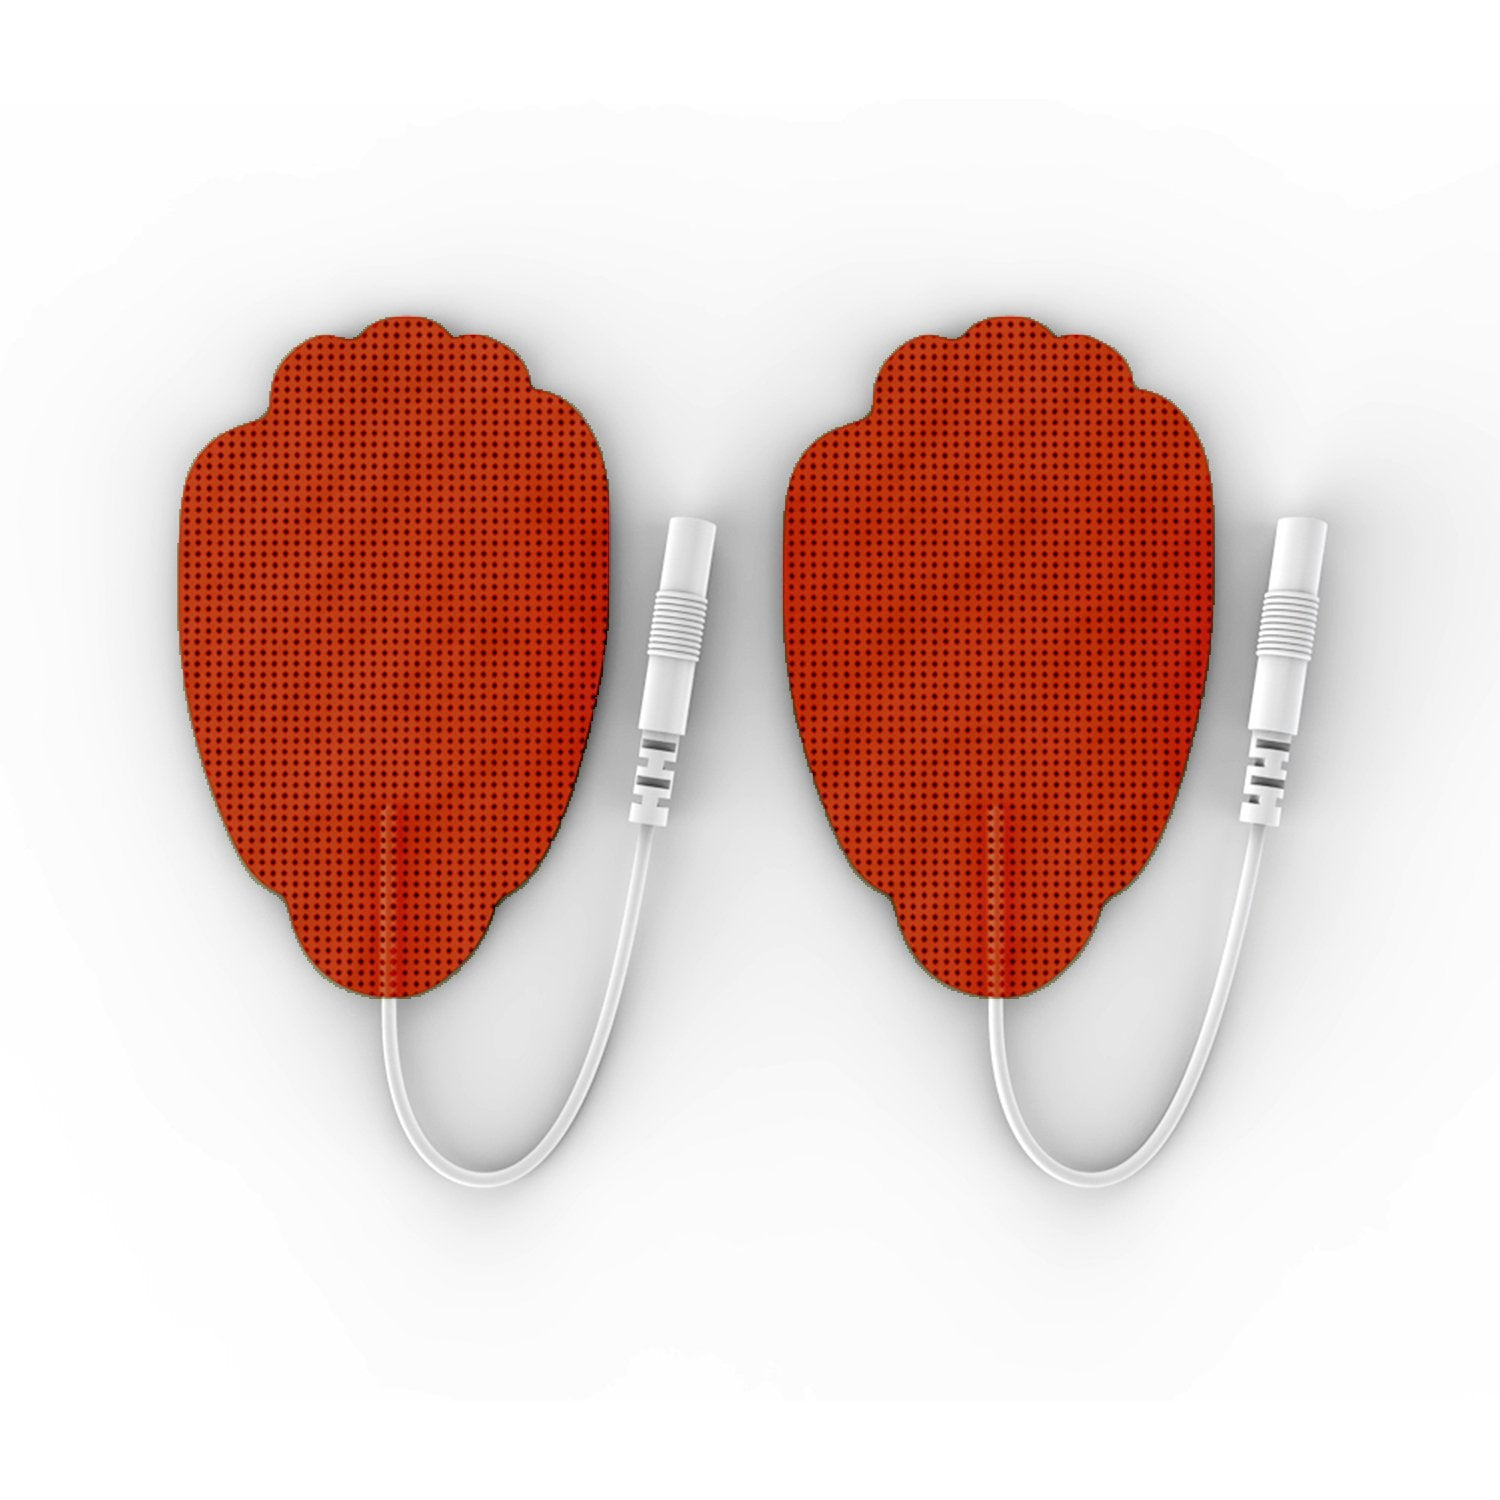 Pair of Pin-Insert Large Hand-Shaped Pads - HealthmateForever